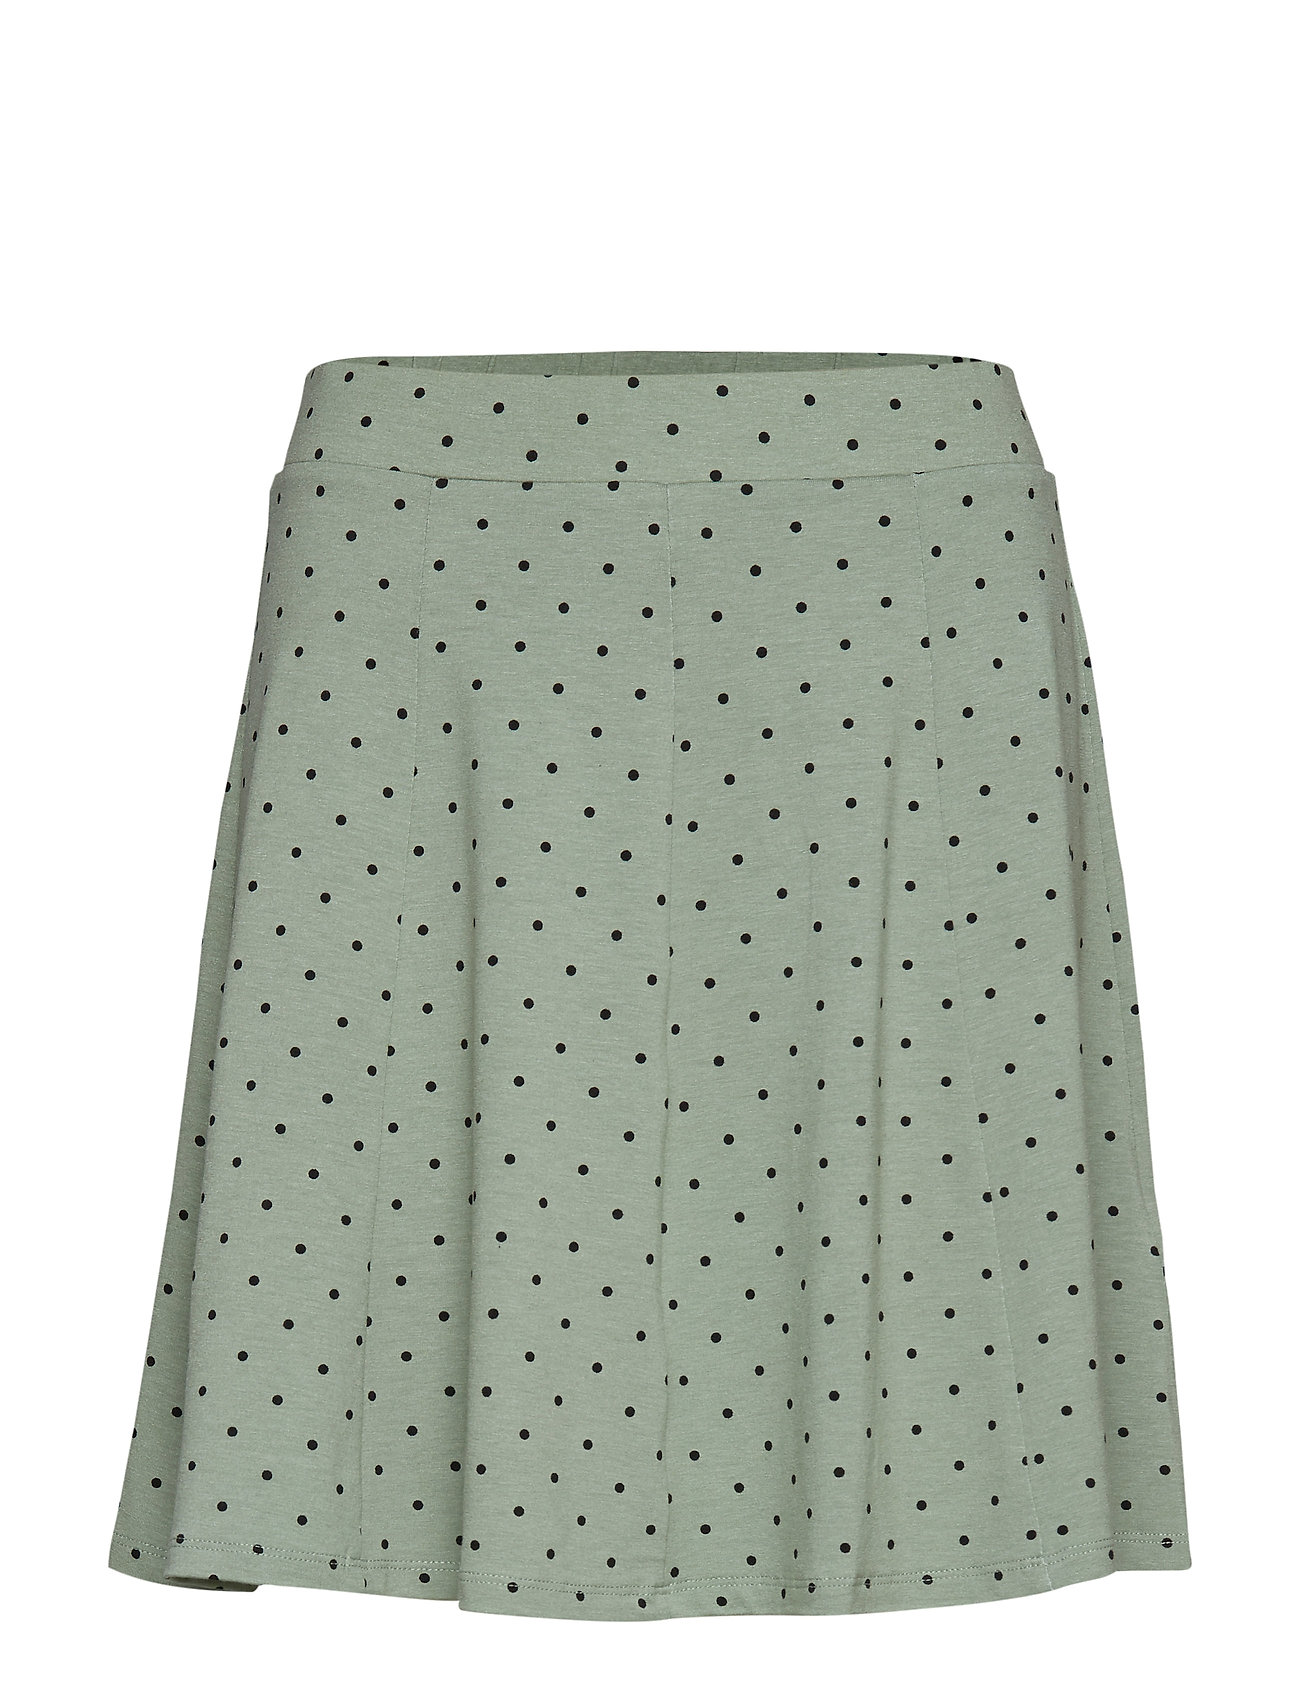 Envii ENMUSIC SKIRT AOP 5890 - ICEBERG DOT